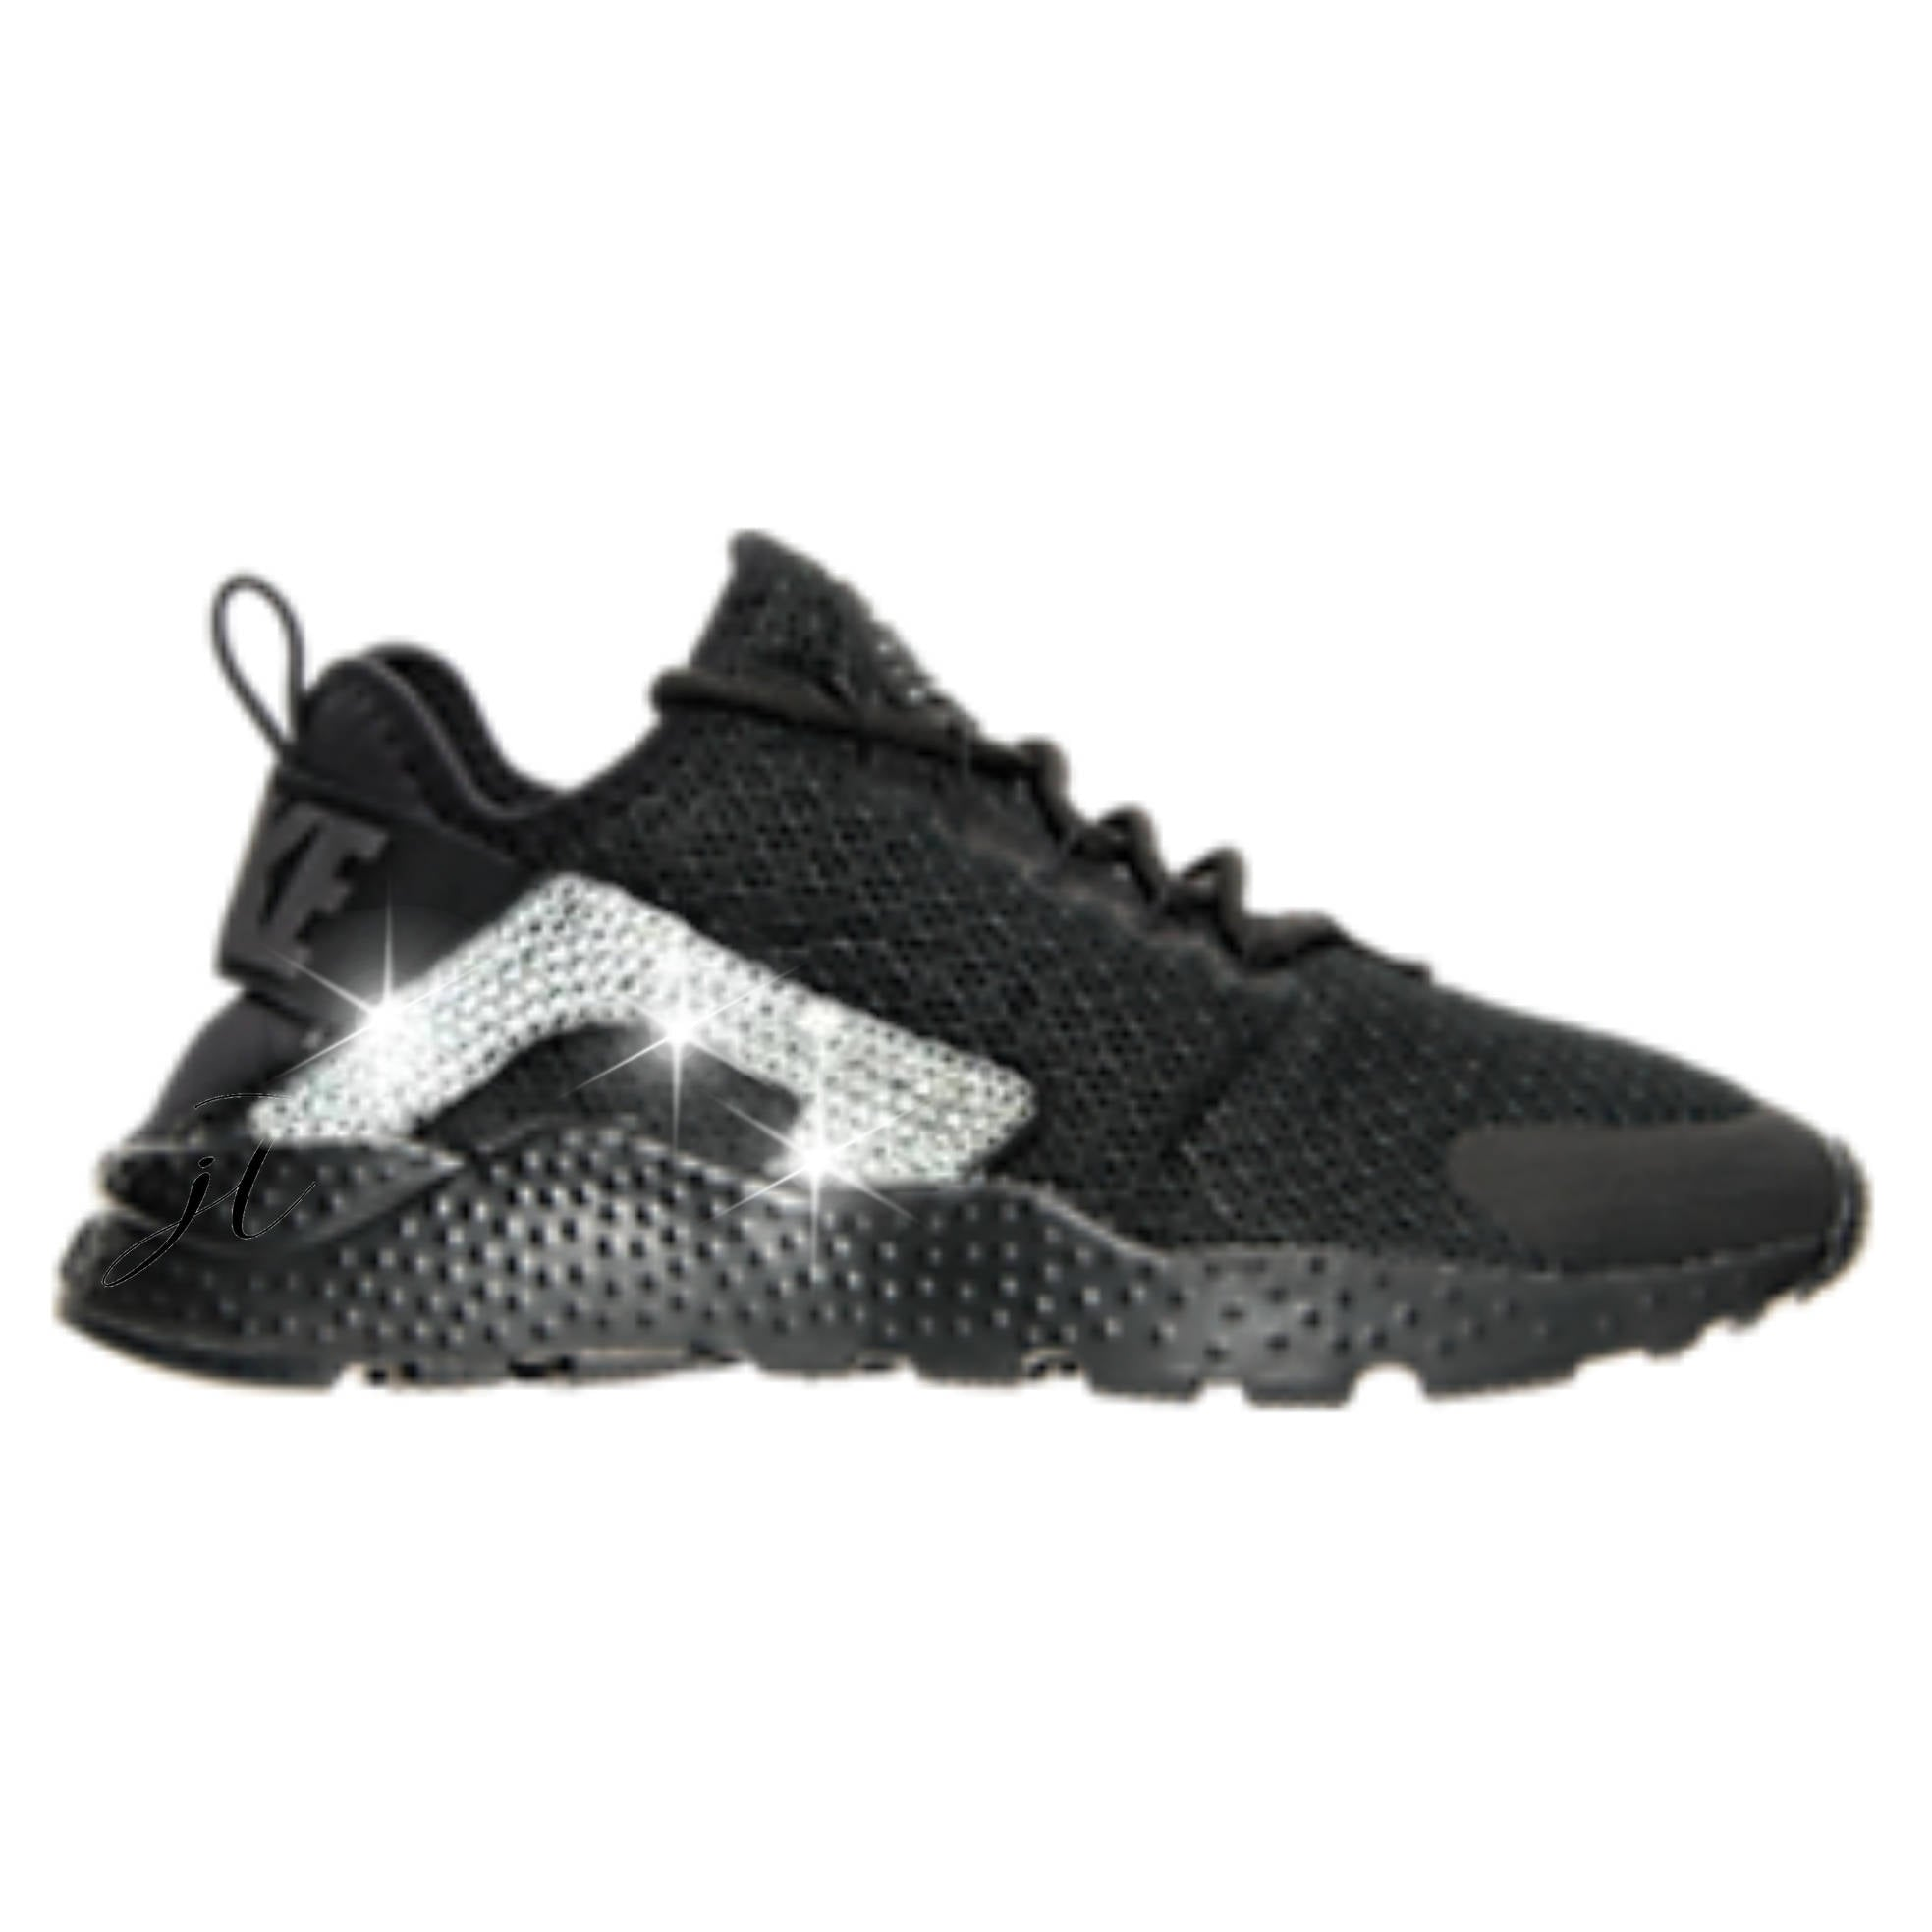 ... ireland black nike huarache customized with swarovski crystal 68838  b48e8 7c6ba3694